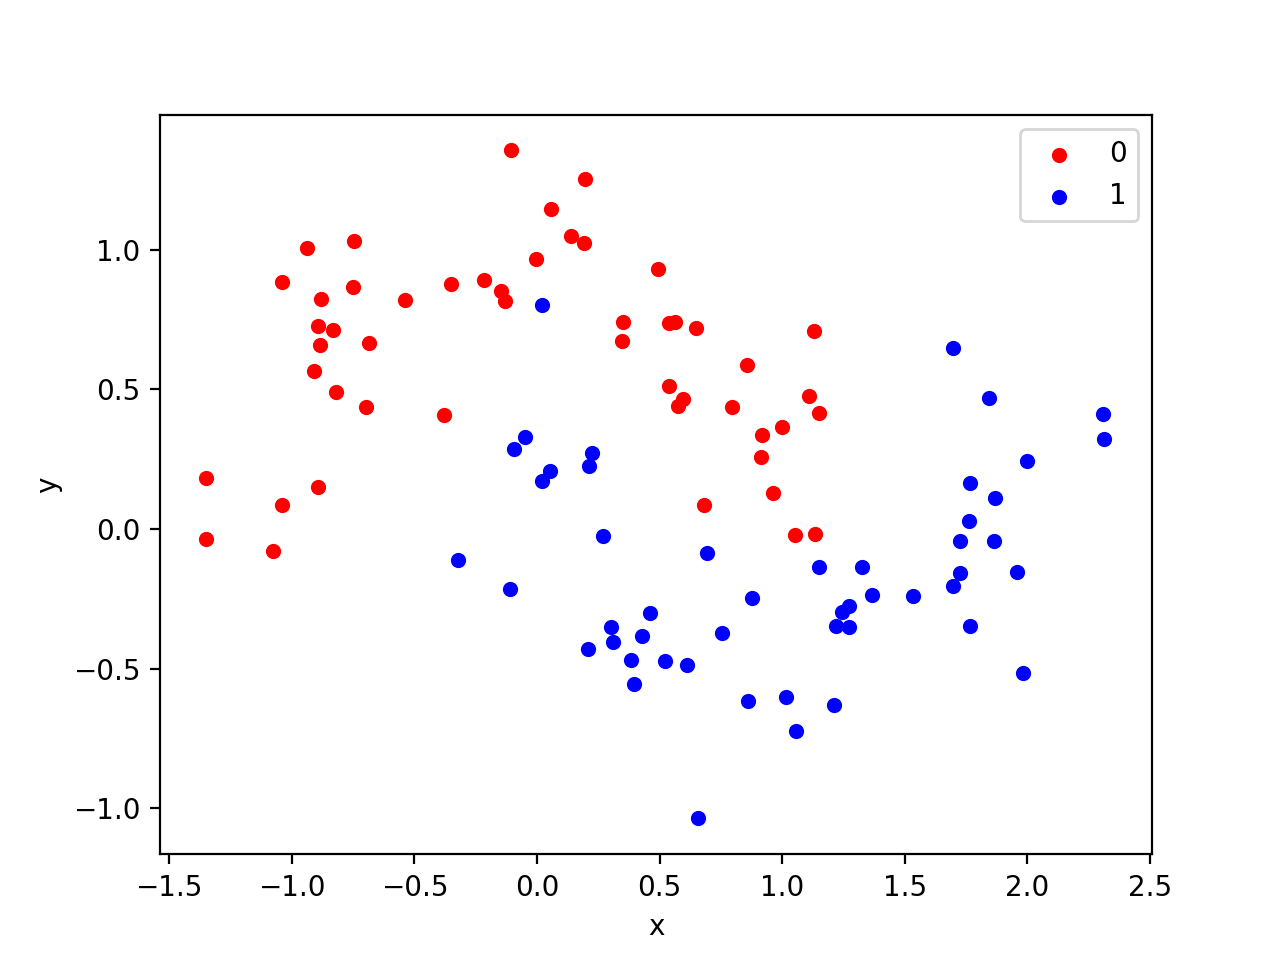 Scatter Plot of Moons Dataset With Color Showing the Class Value of Each Sample